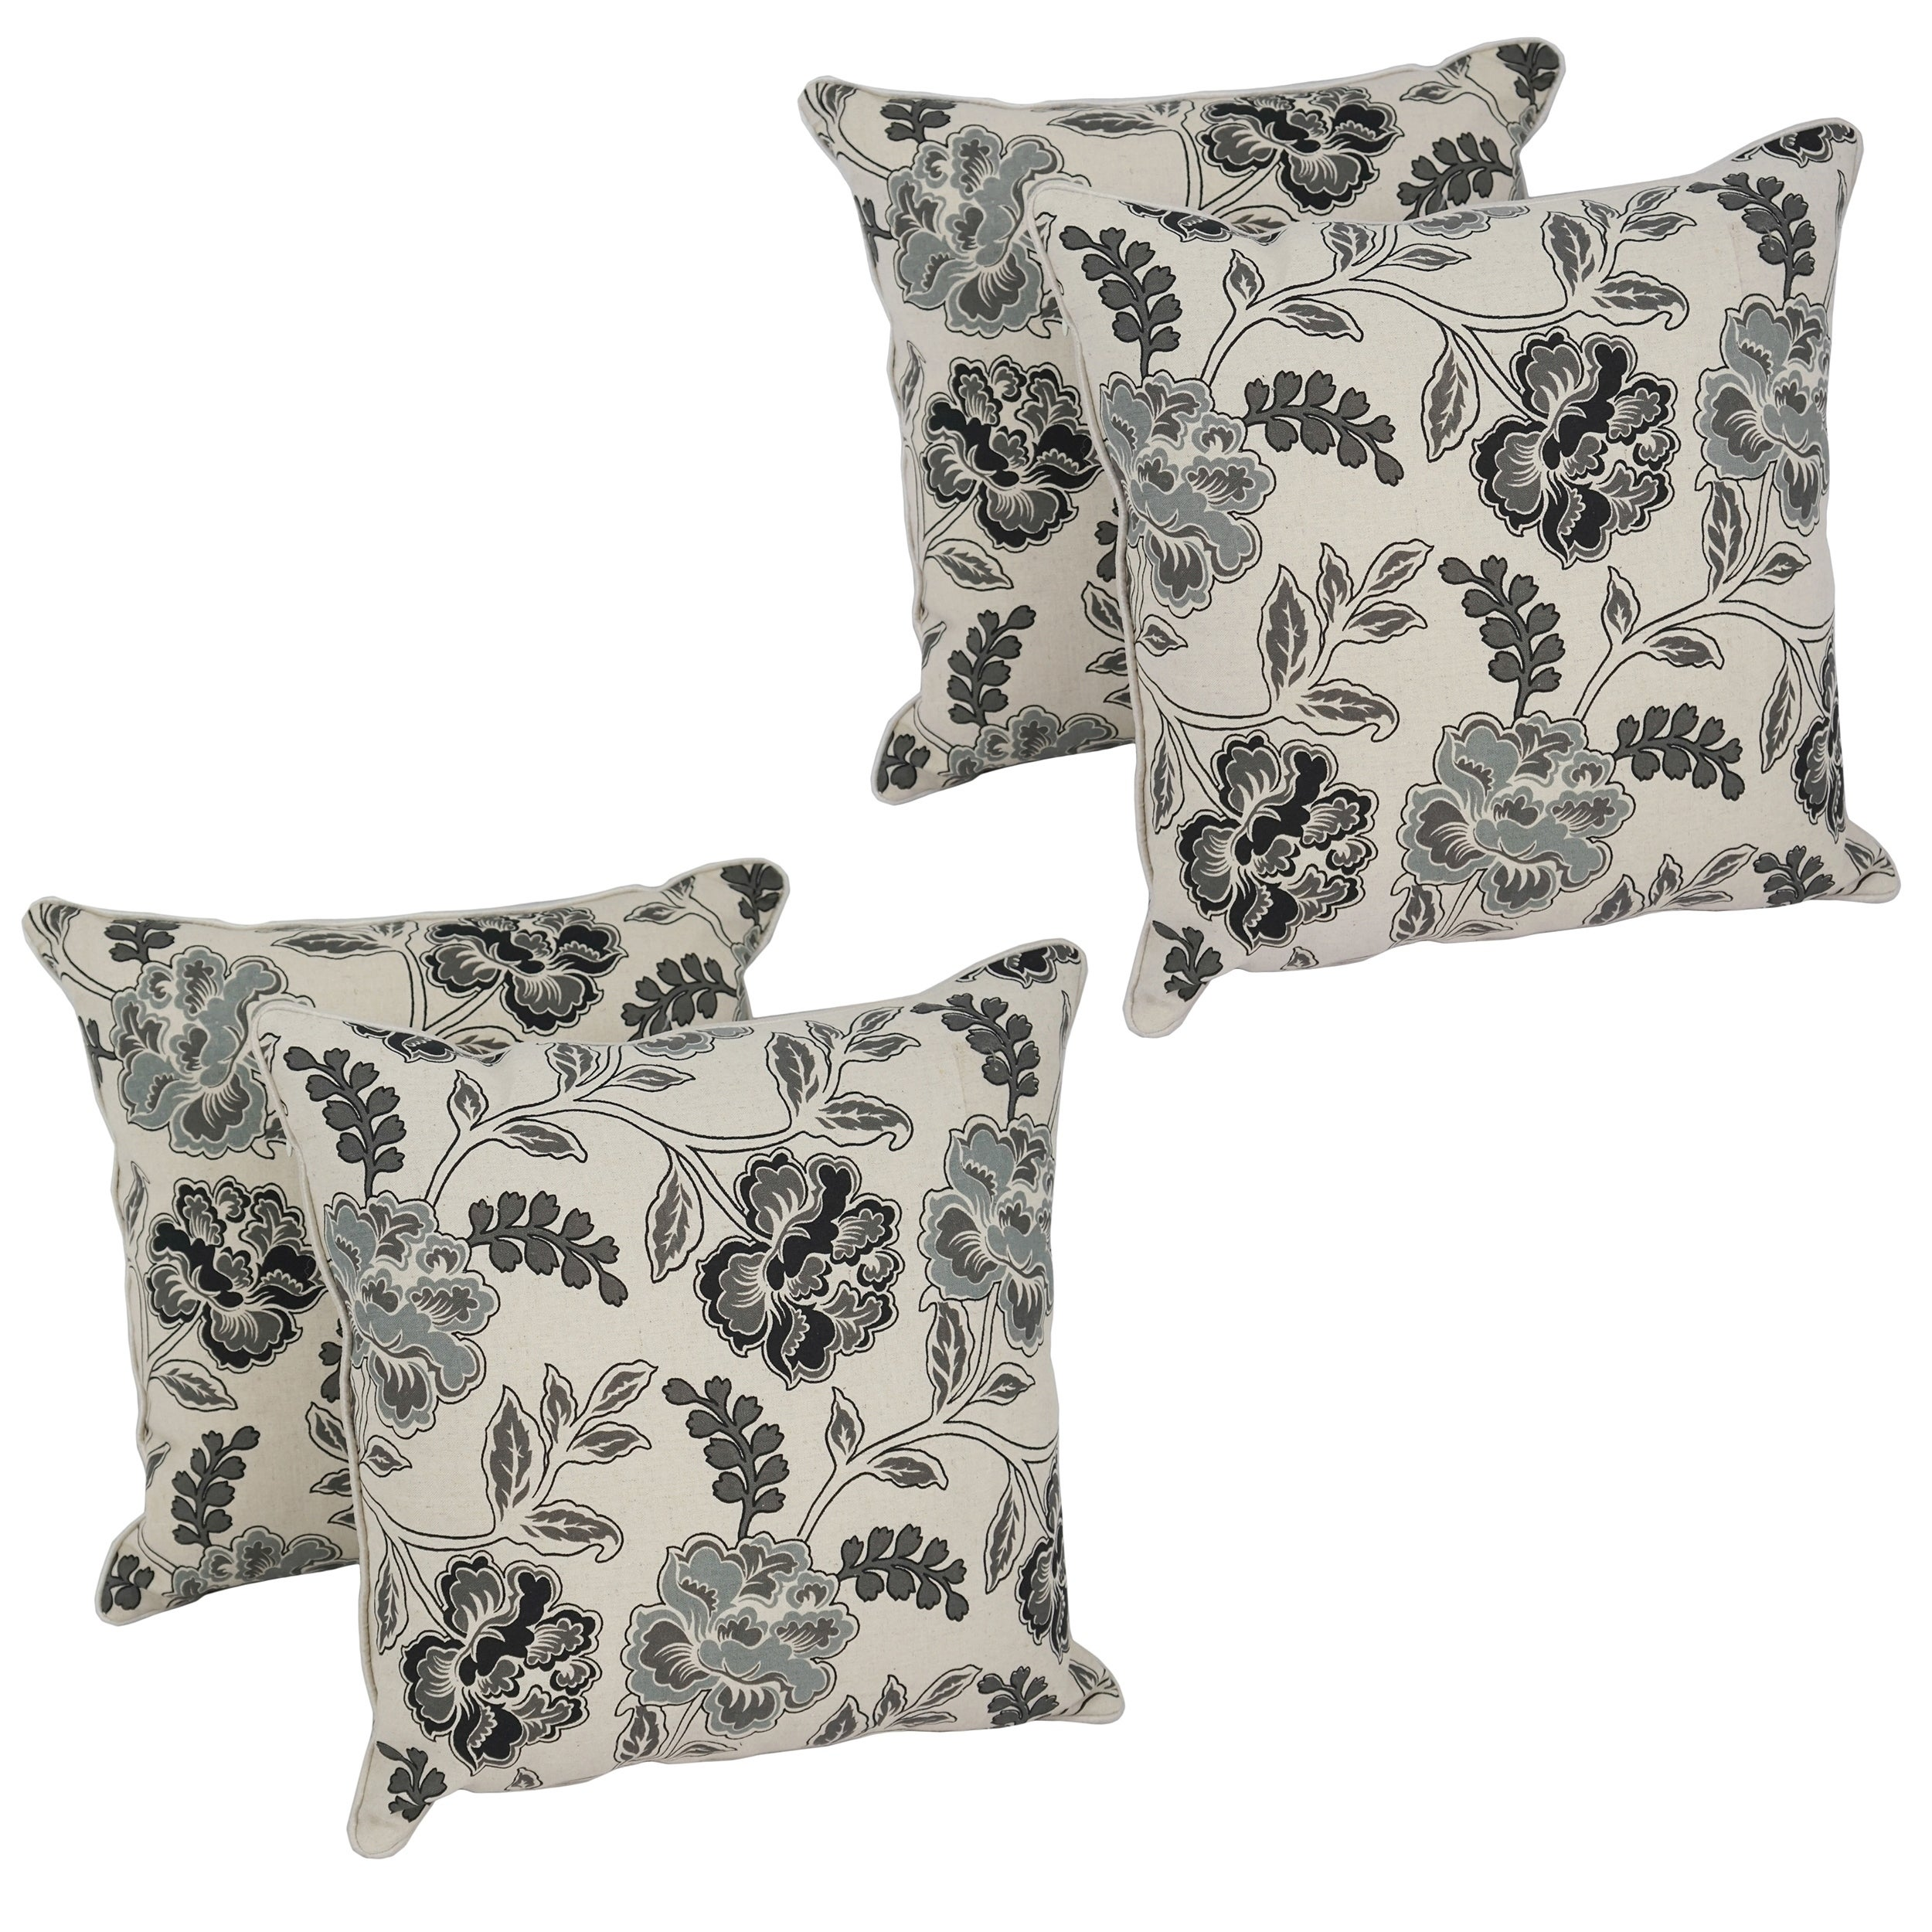 Blazing Needles 17-inch Victoria Throw Pillow (Set of 4) (Square - Polyester/Linen)